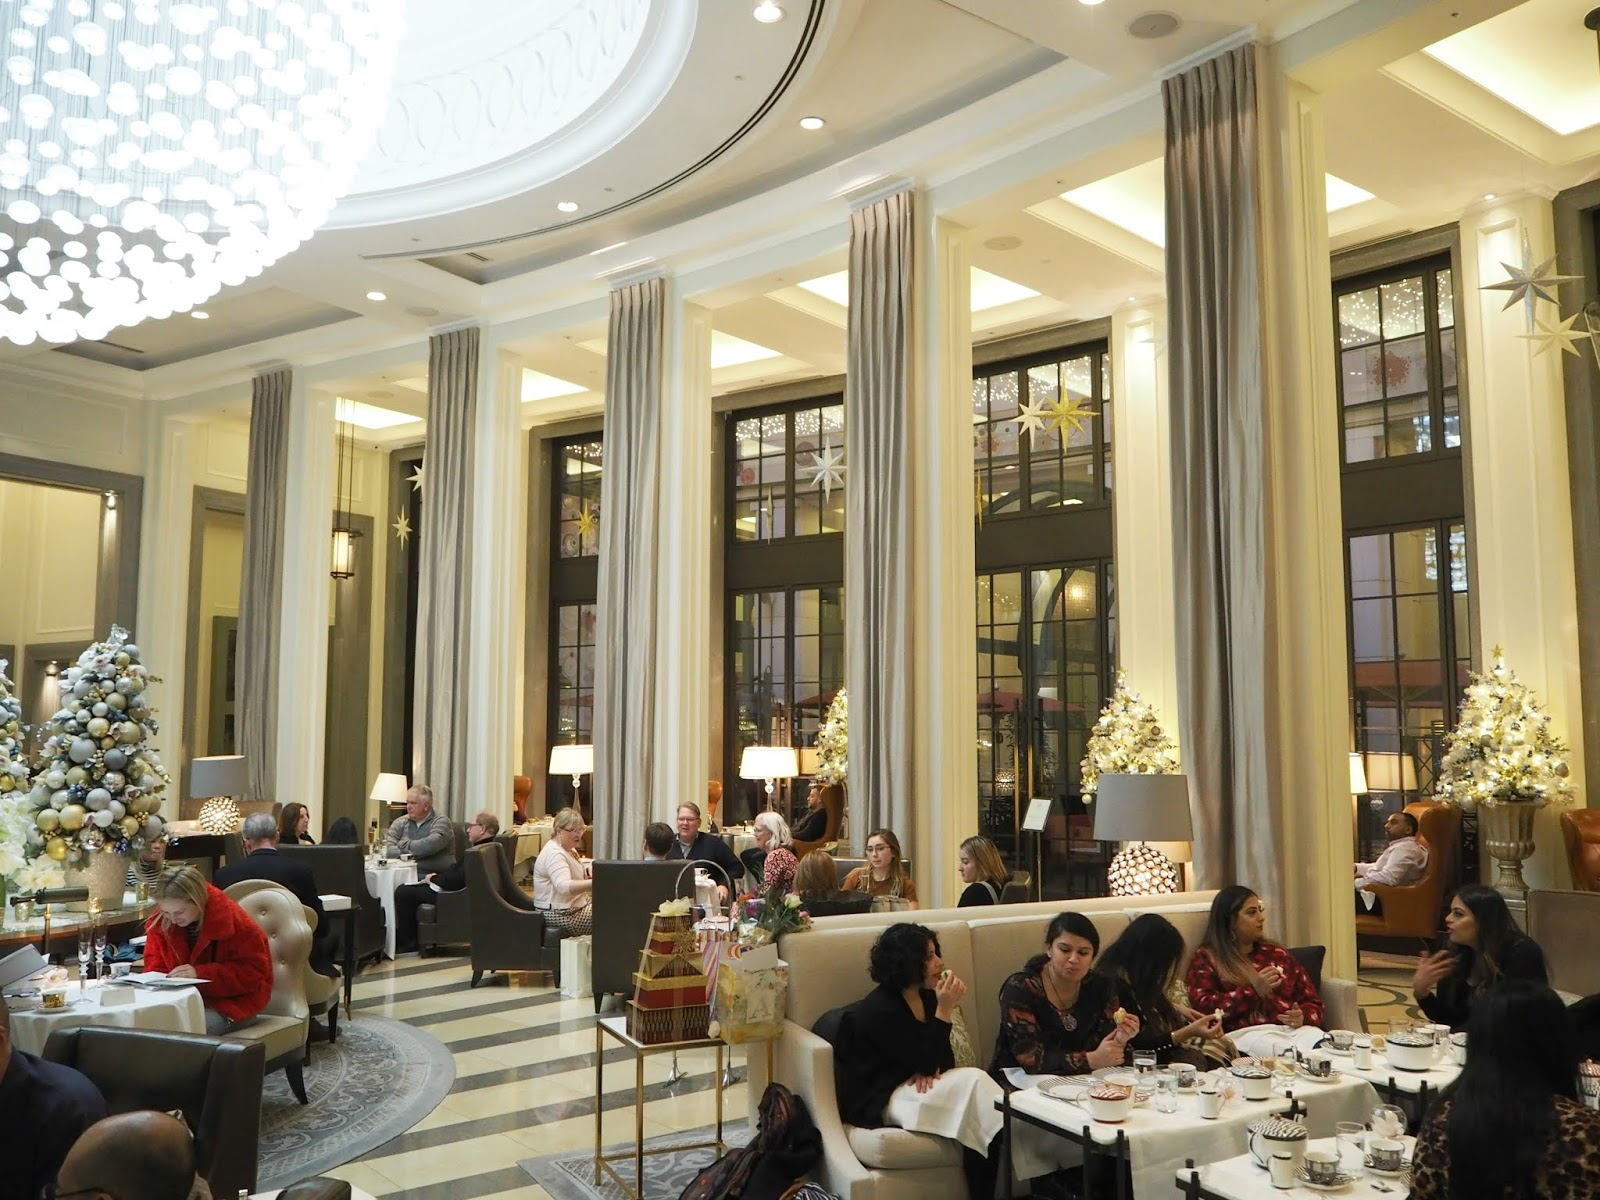 The Crystal Moon Lounge Corinthia Hotel Afternoon Tea